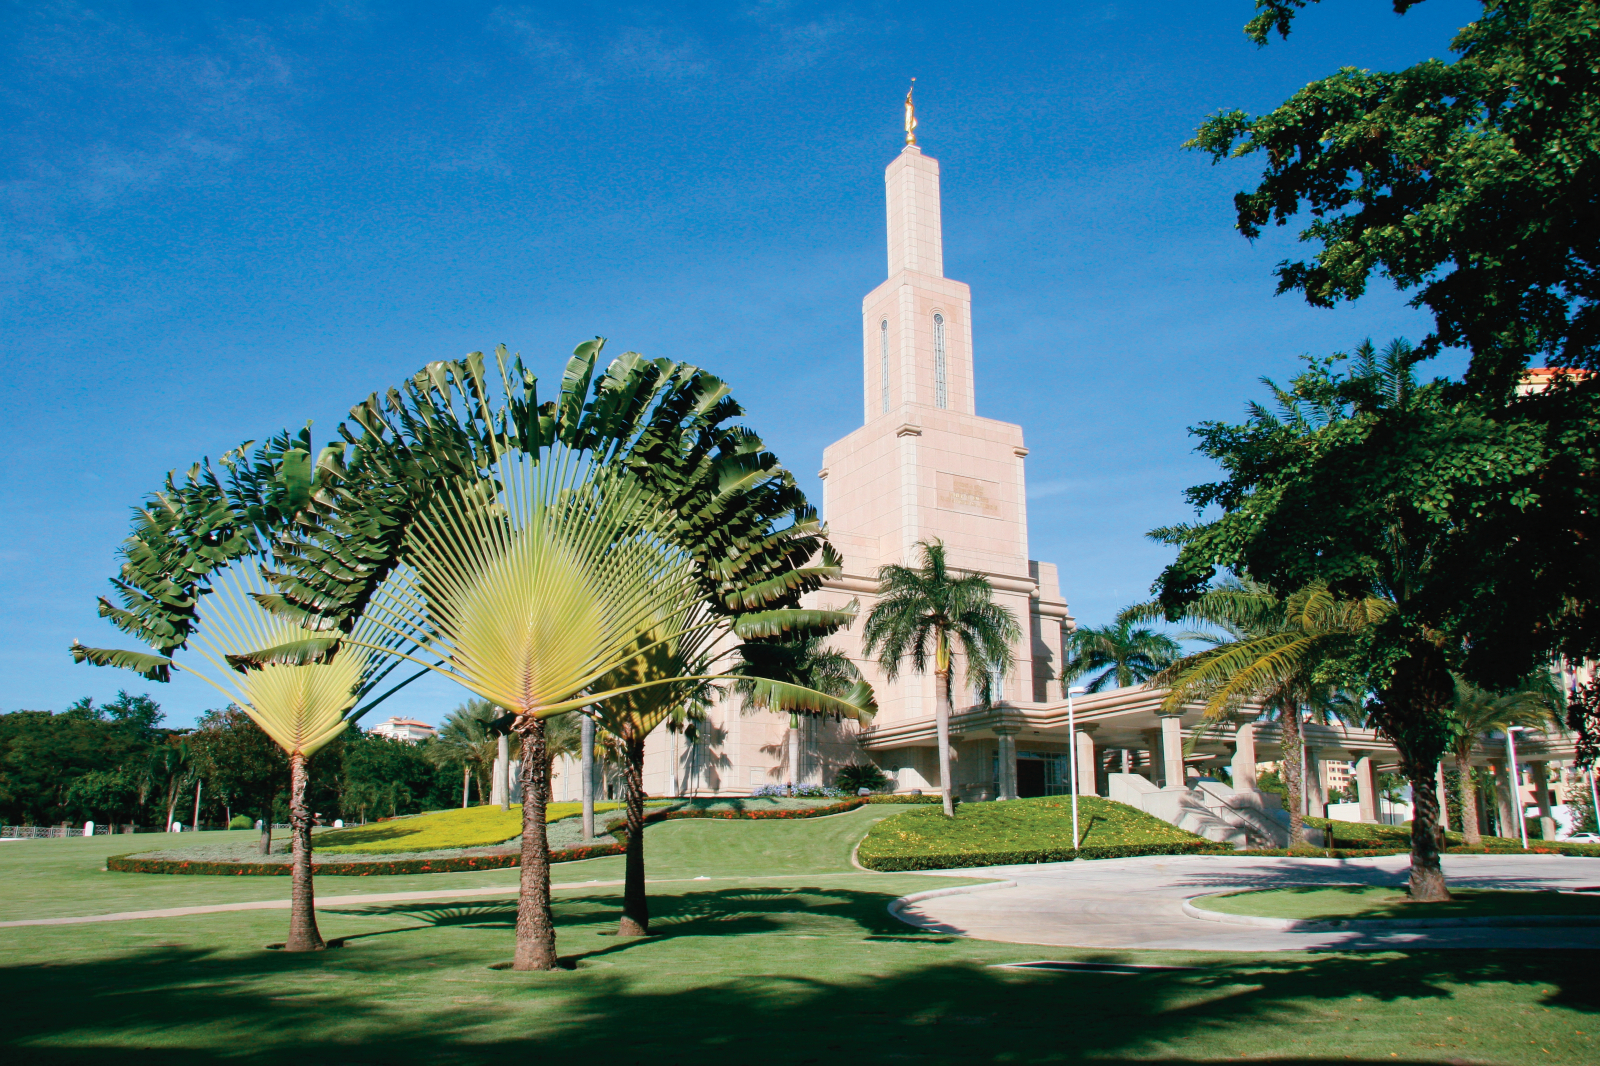 Santo Domingo Dominican Republic  city pictures gallery : Santo Domingo Dominican Republic Temple